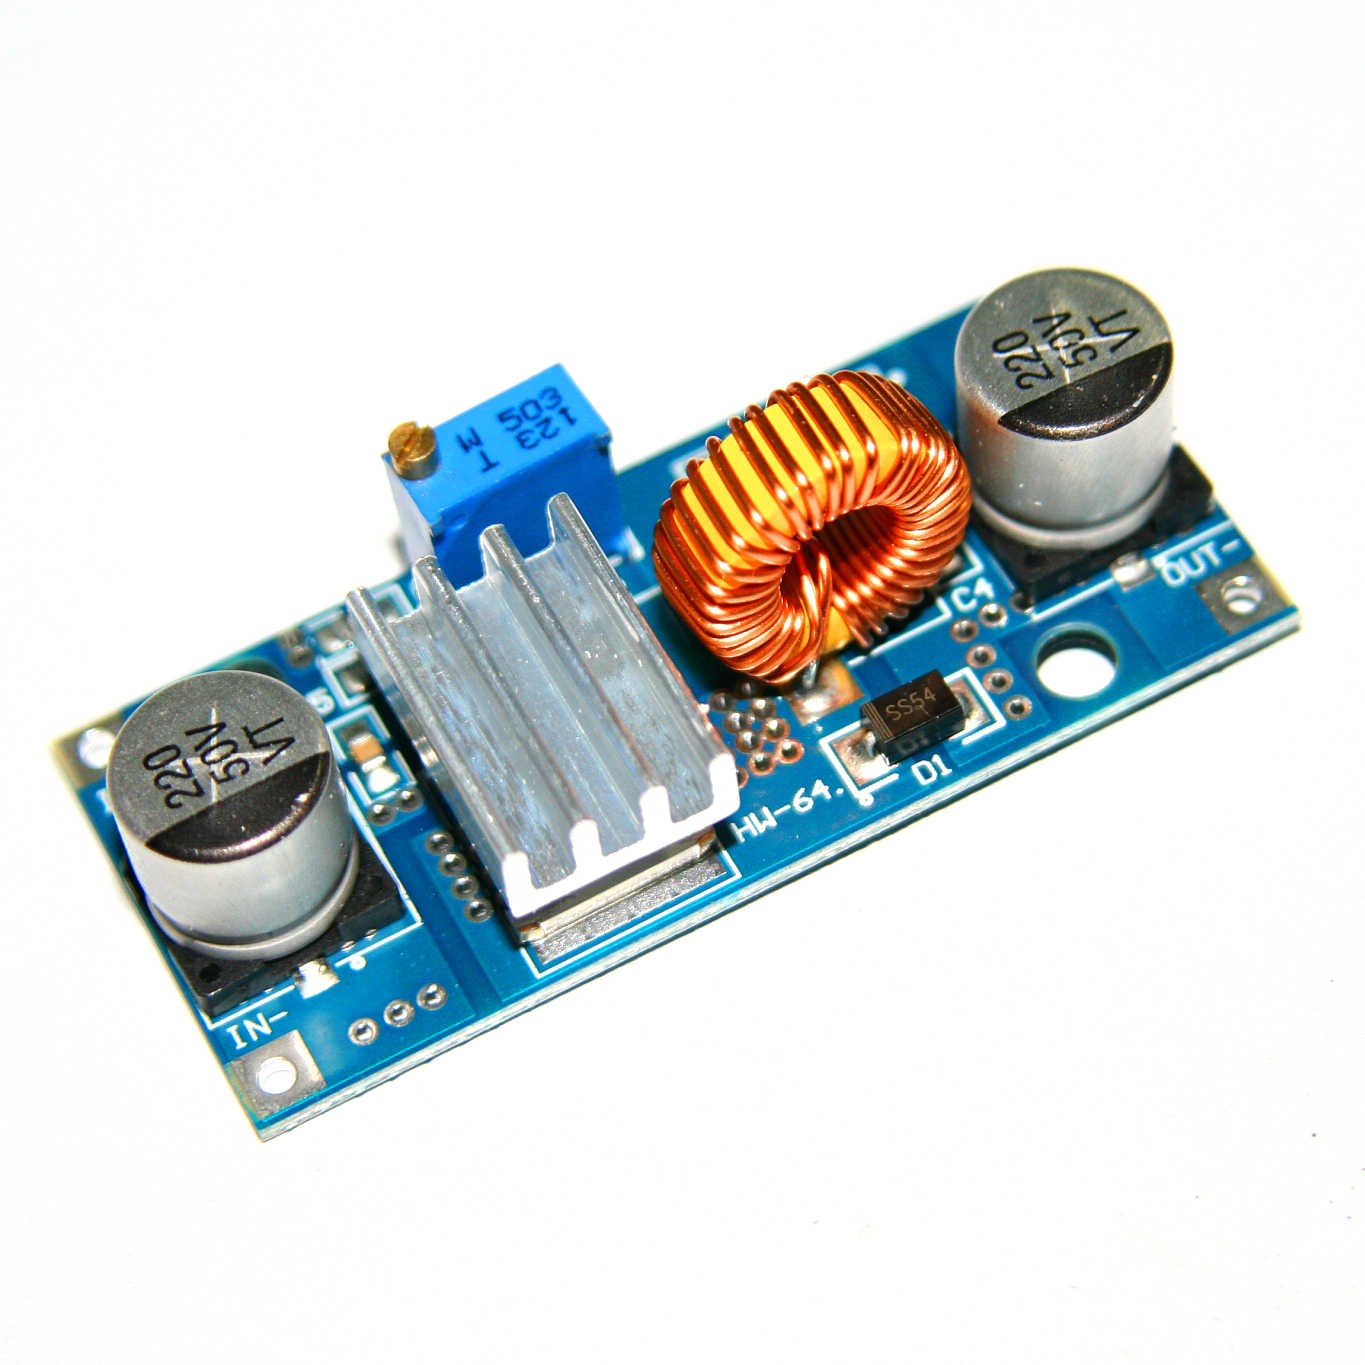 XL4015 E1 DC 4-38V to 1.25-36V Step Down Adjustable Power Supply Module 5A LED Lithium Charger With Heat Sink